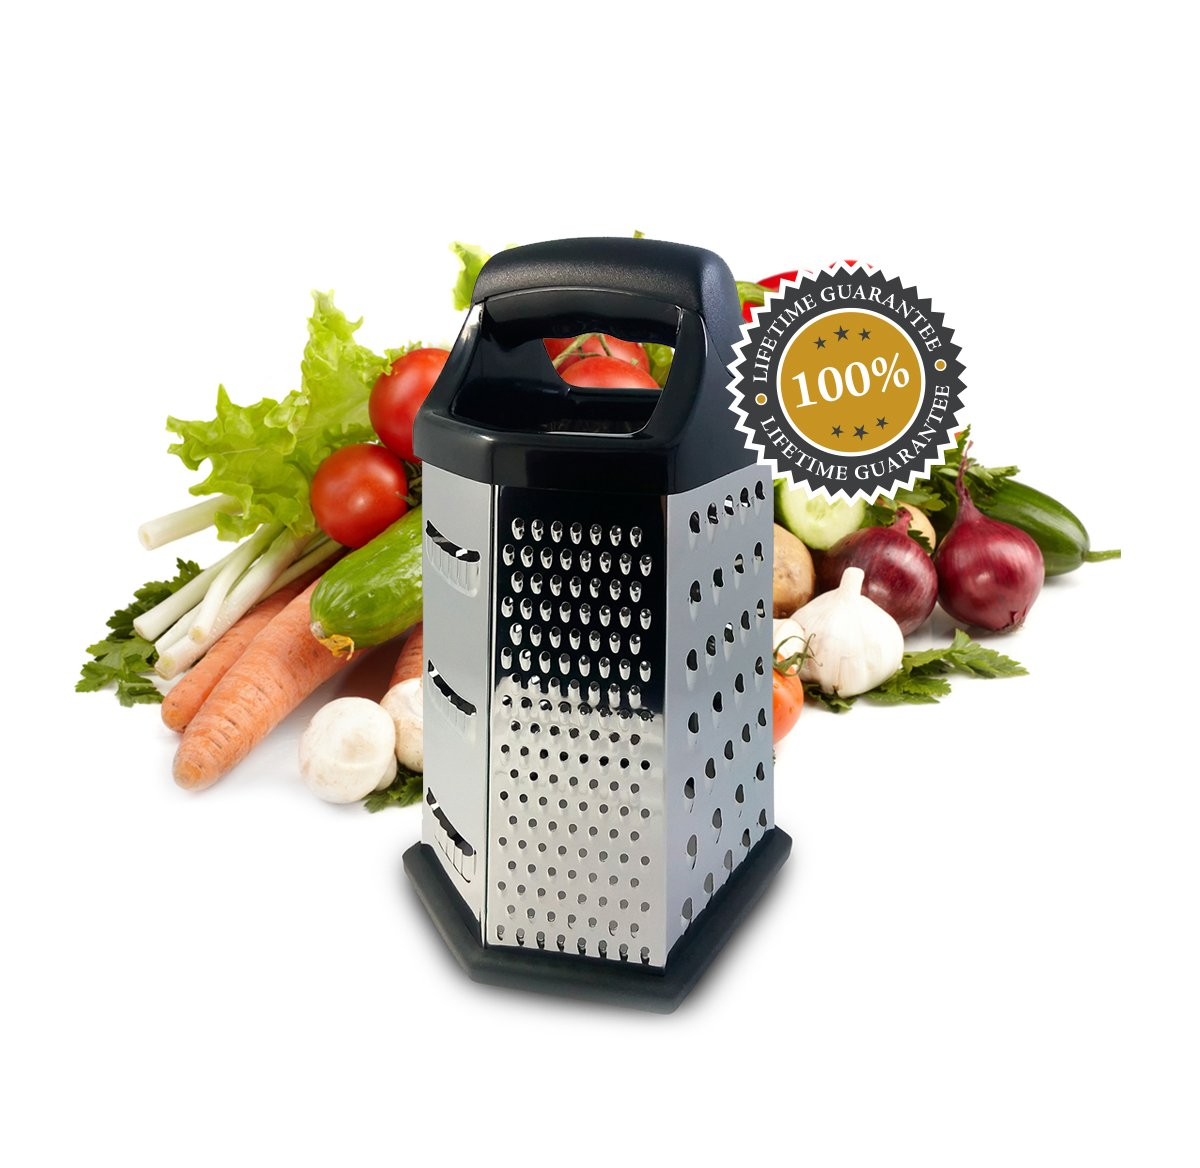 Isabella Dora Cheese Grater - Perfect Stainless Steel Box Grater for Vegetable, Ginger